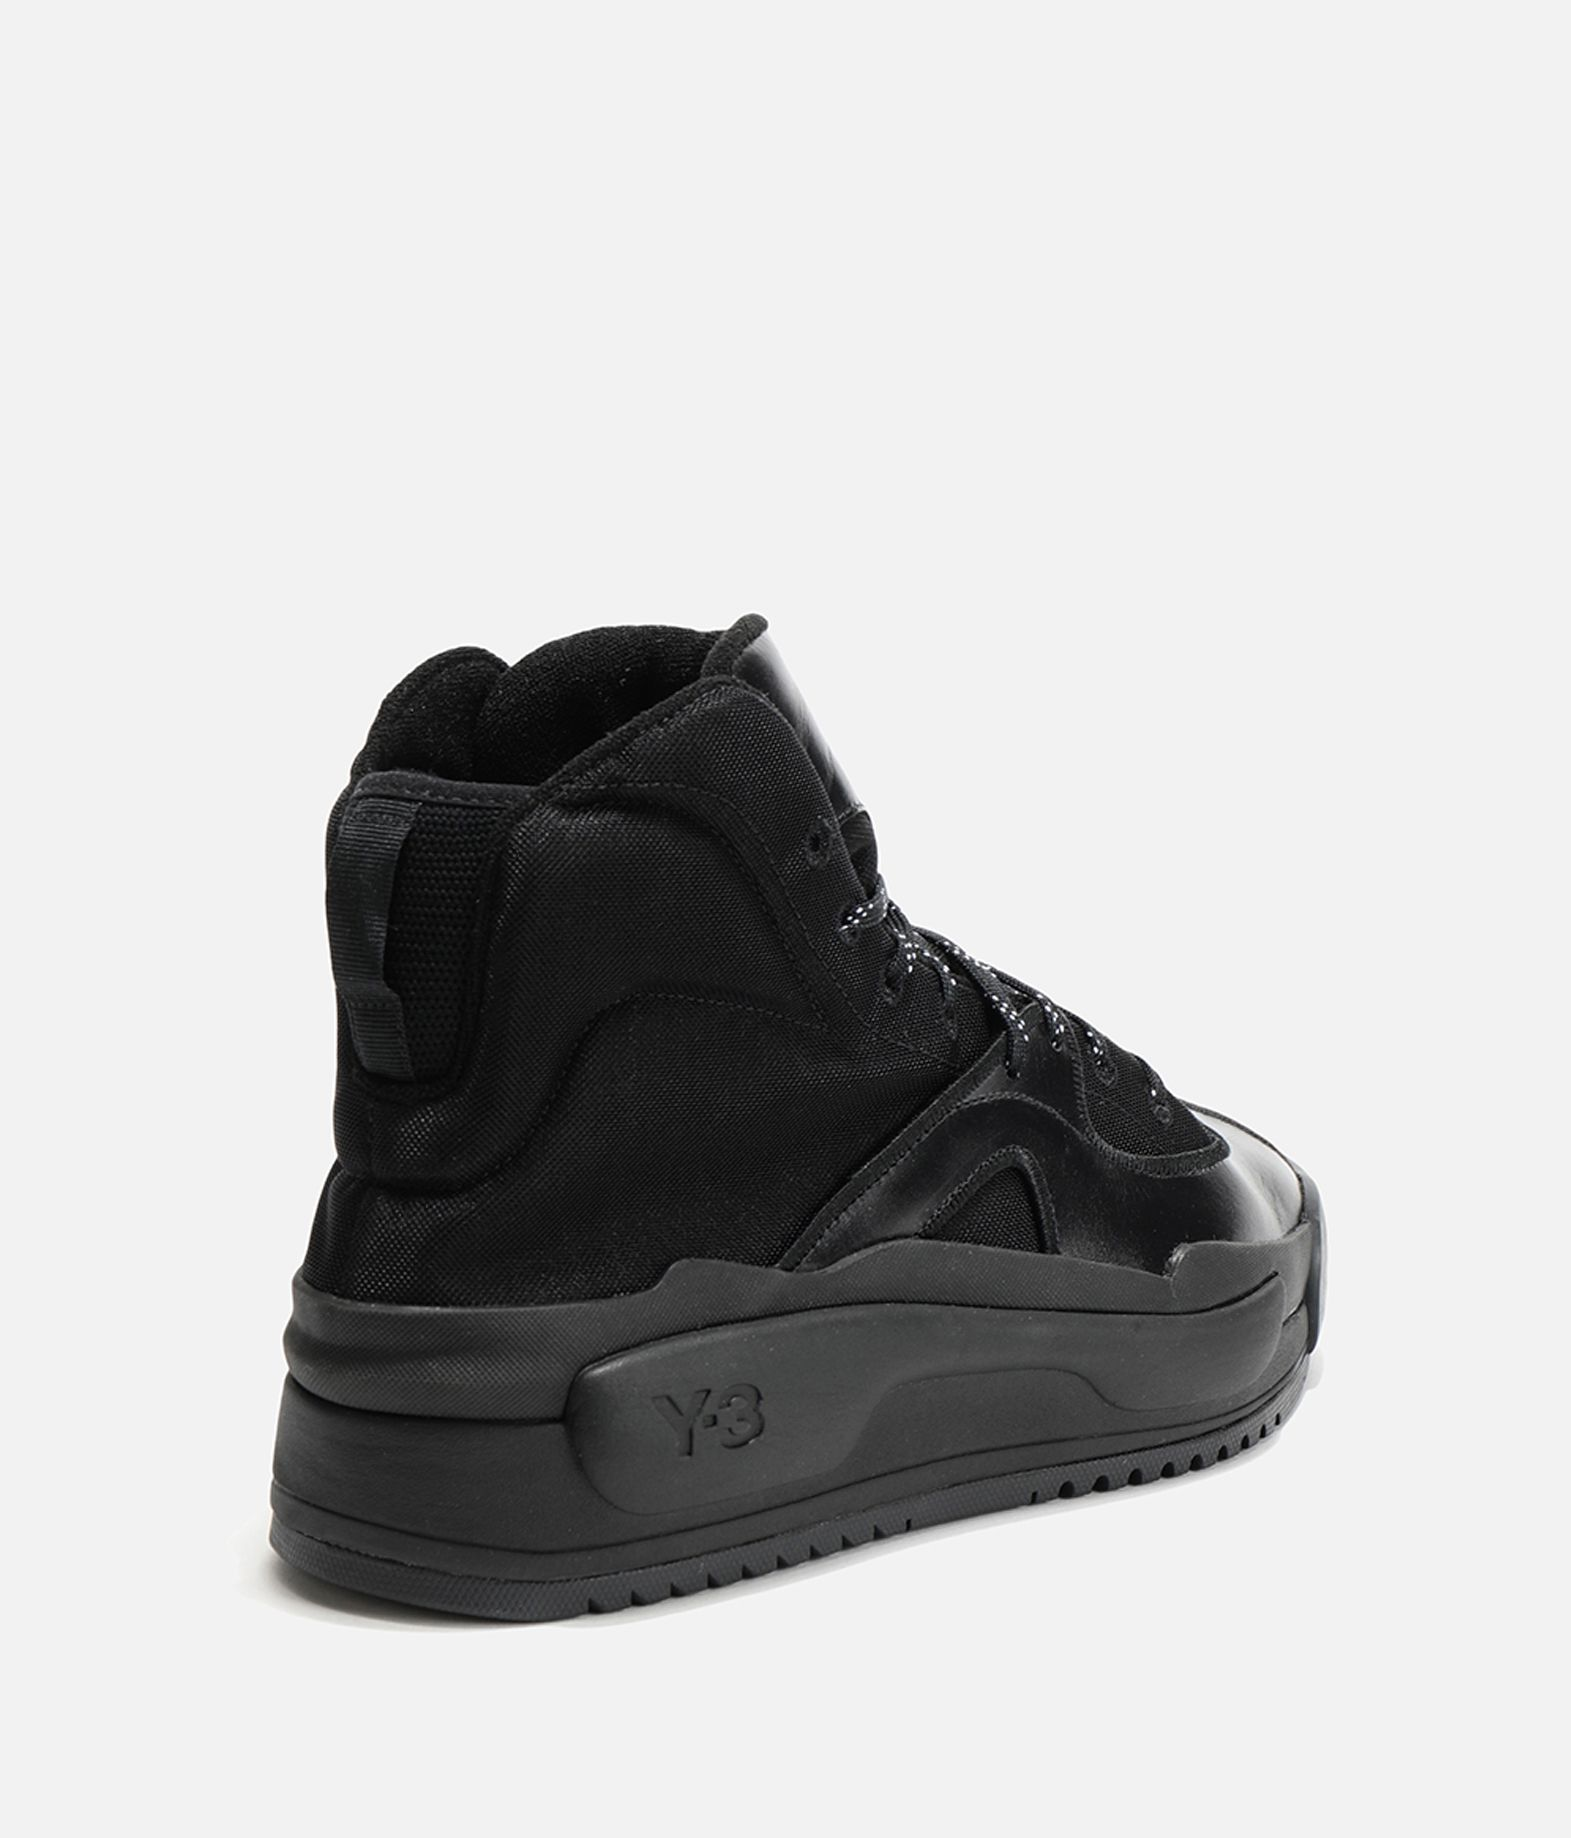 Y-3 Y-3 Hokori Sneakers Woman d